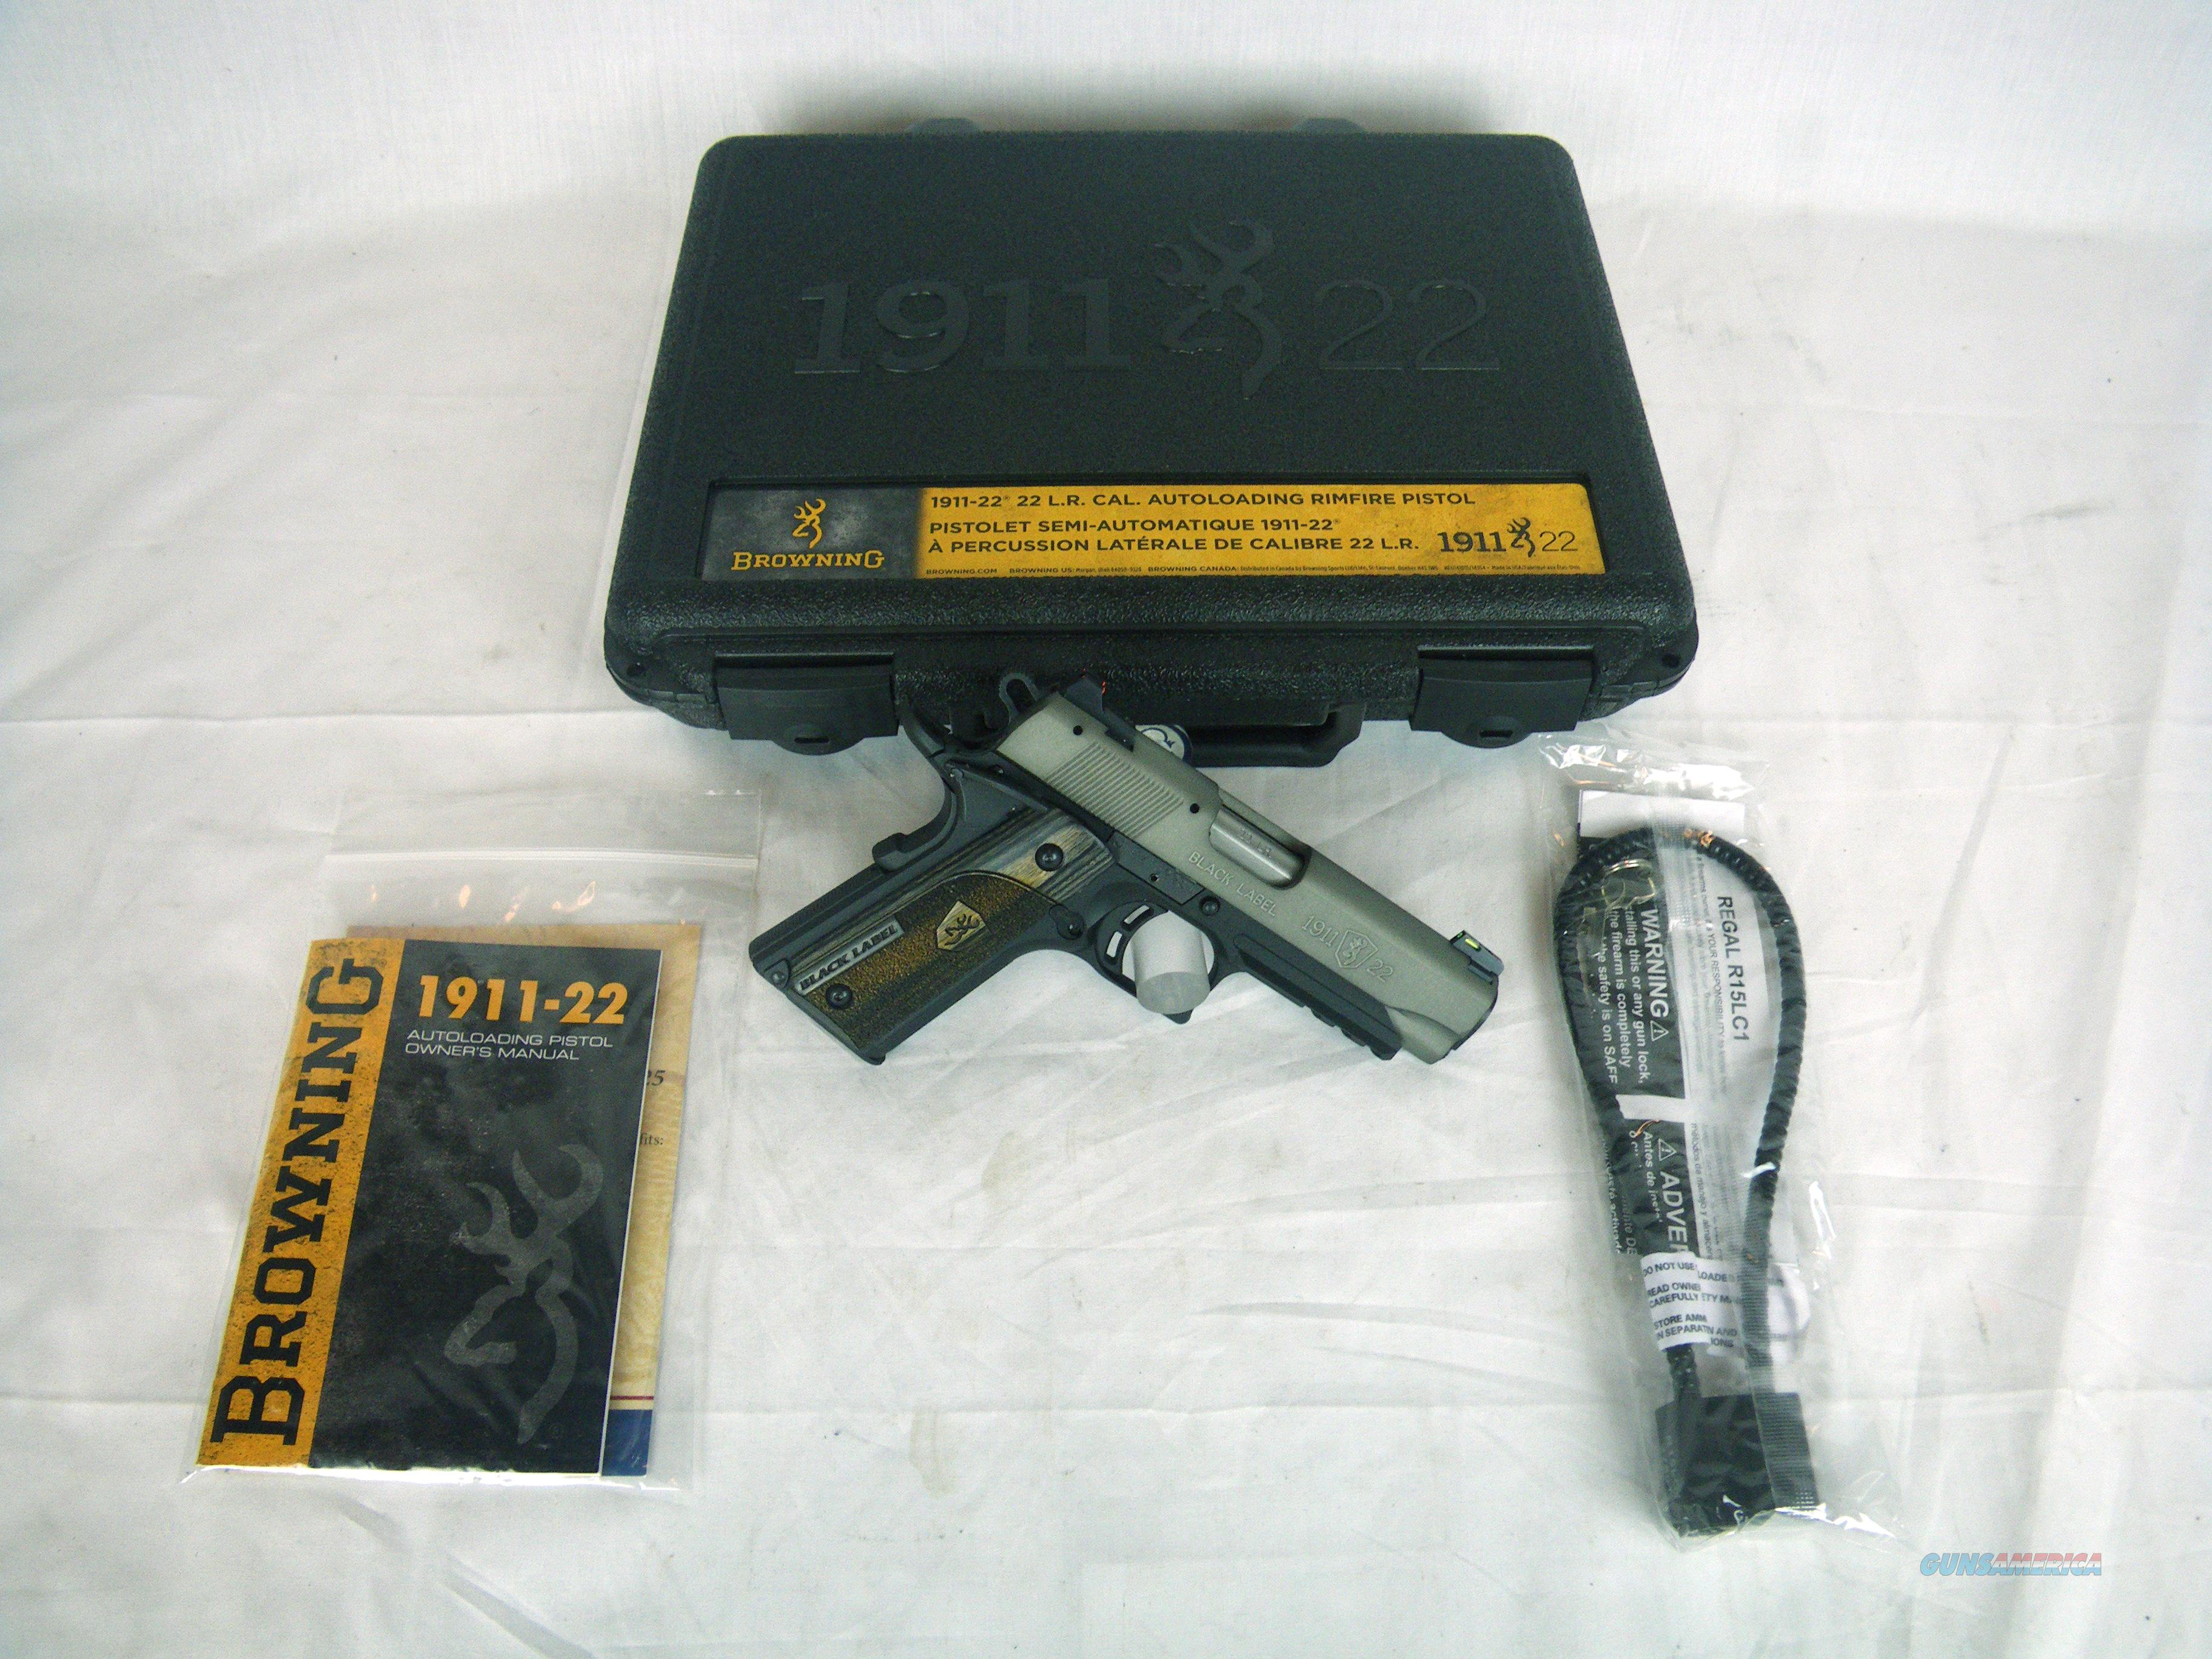 """Browning 1911-22 Gray Compact W/Rail 22lr 3-5/8"""" #051850490  Guns > Pistols > Browning Pistols > Other Autos"""